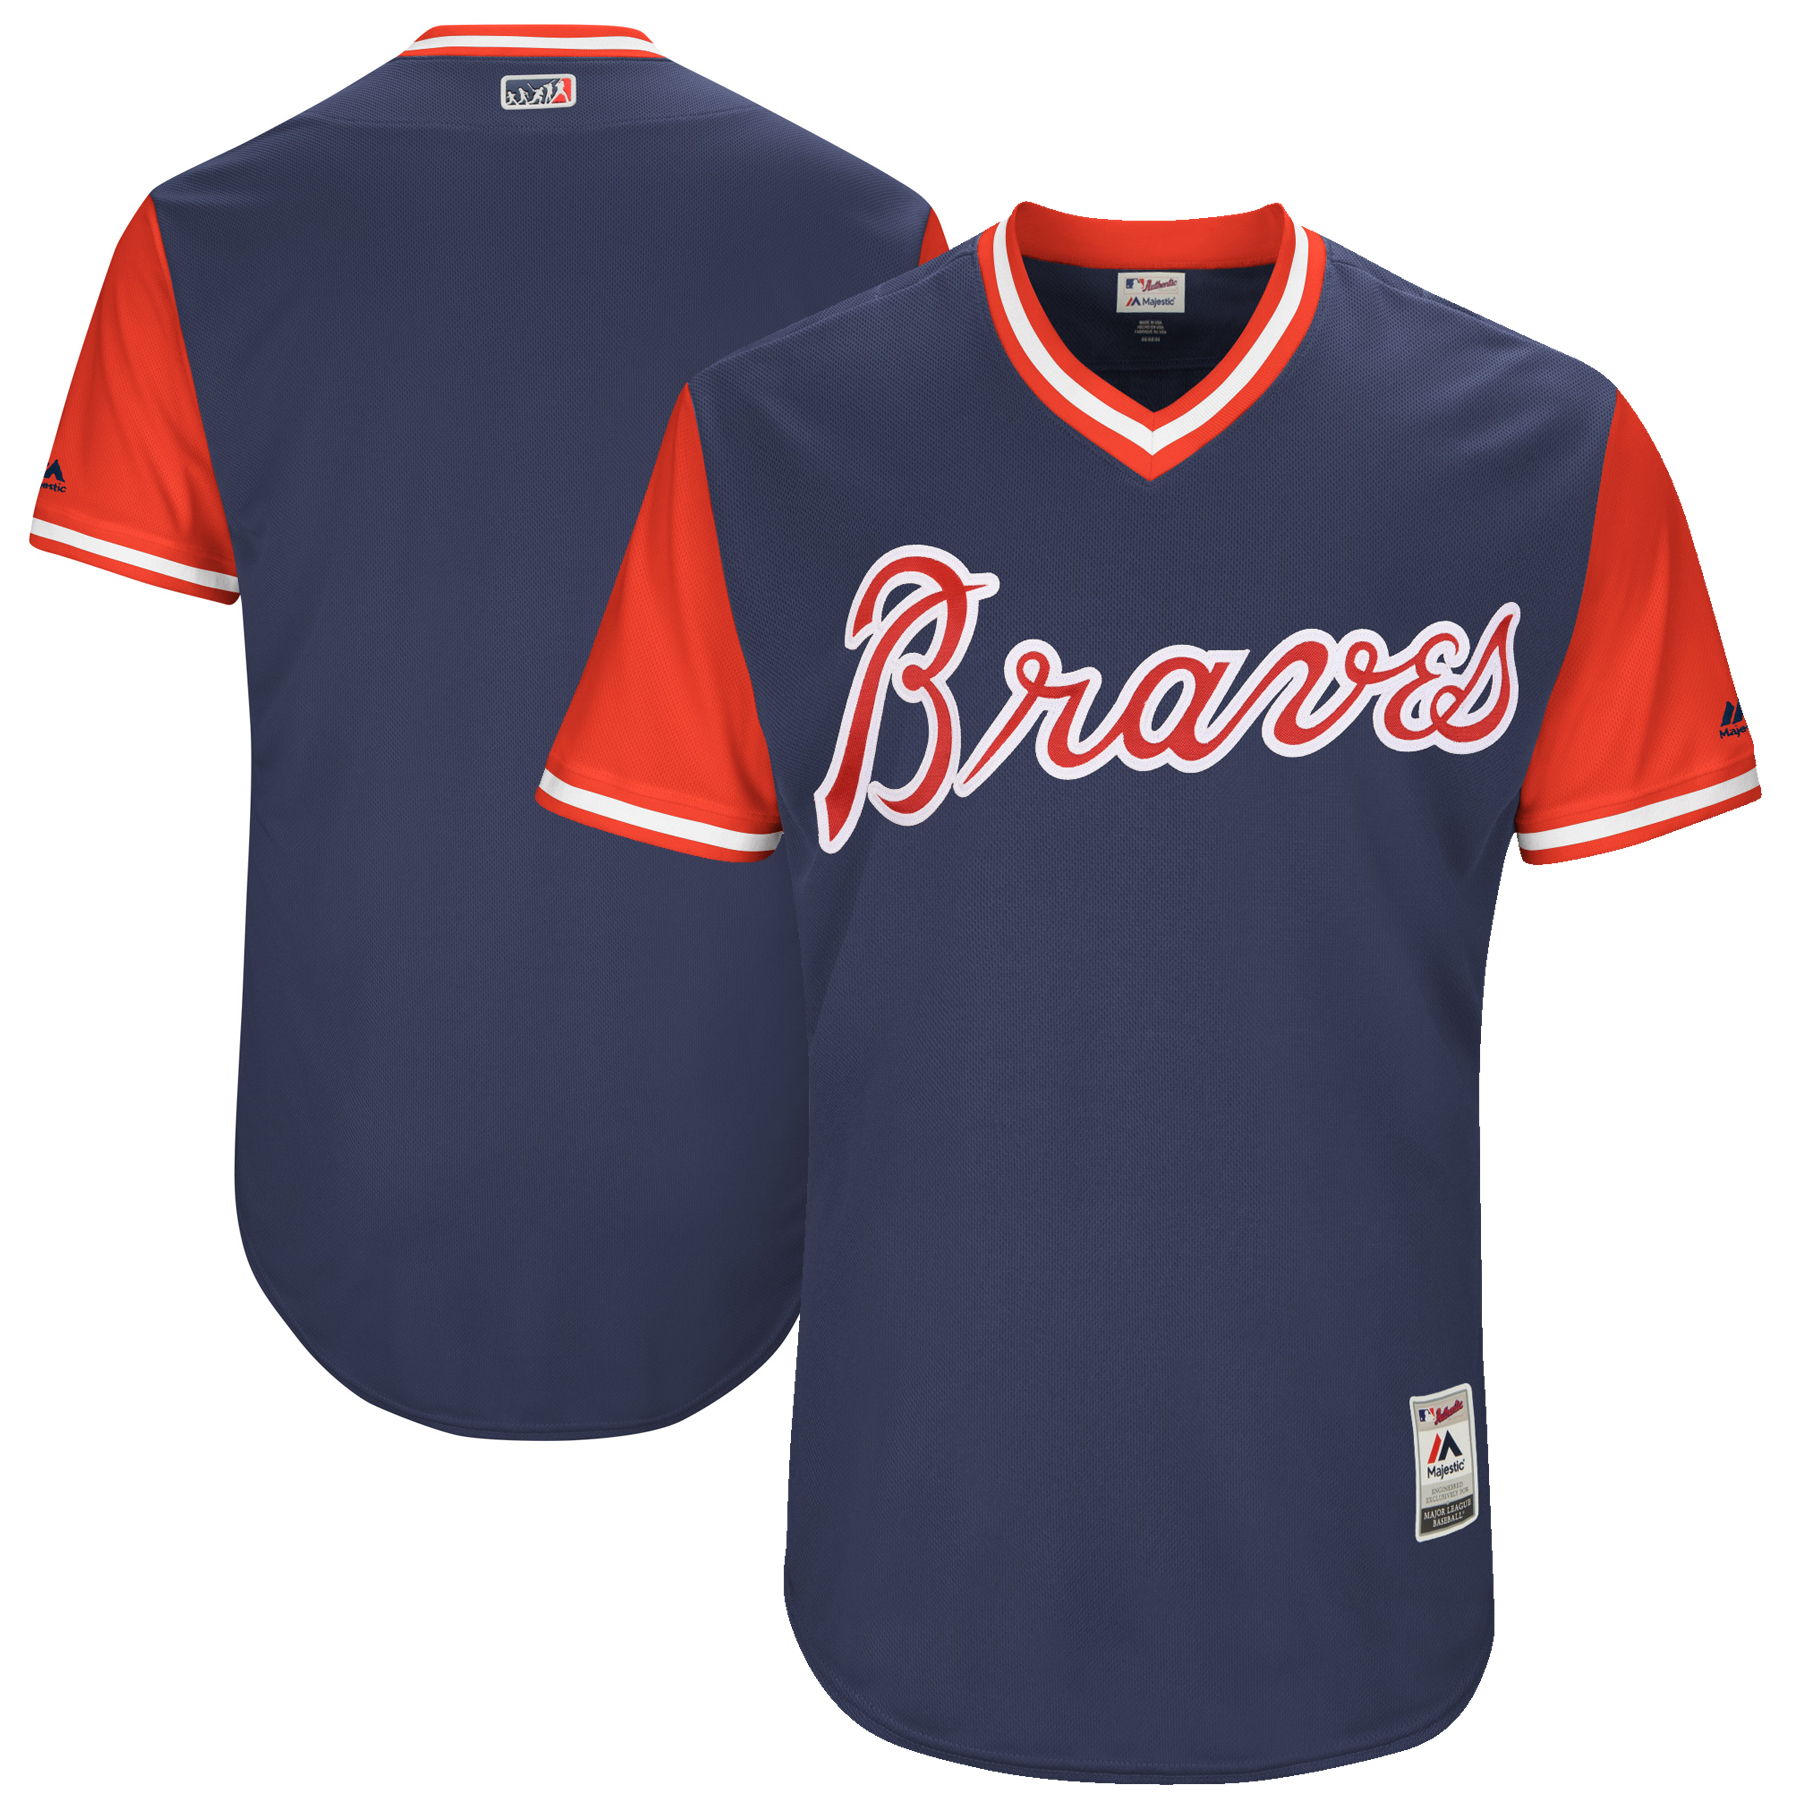 Atlanta Braves Majestic 2017 Players Weekend Authentic Team Jersey - Navy